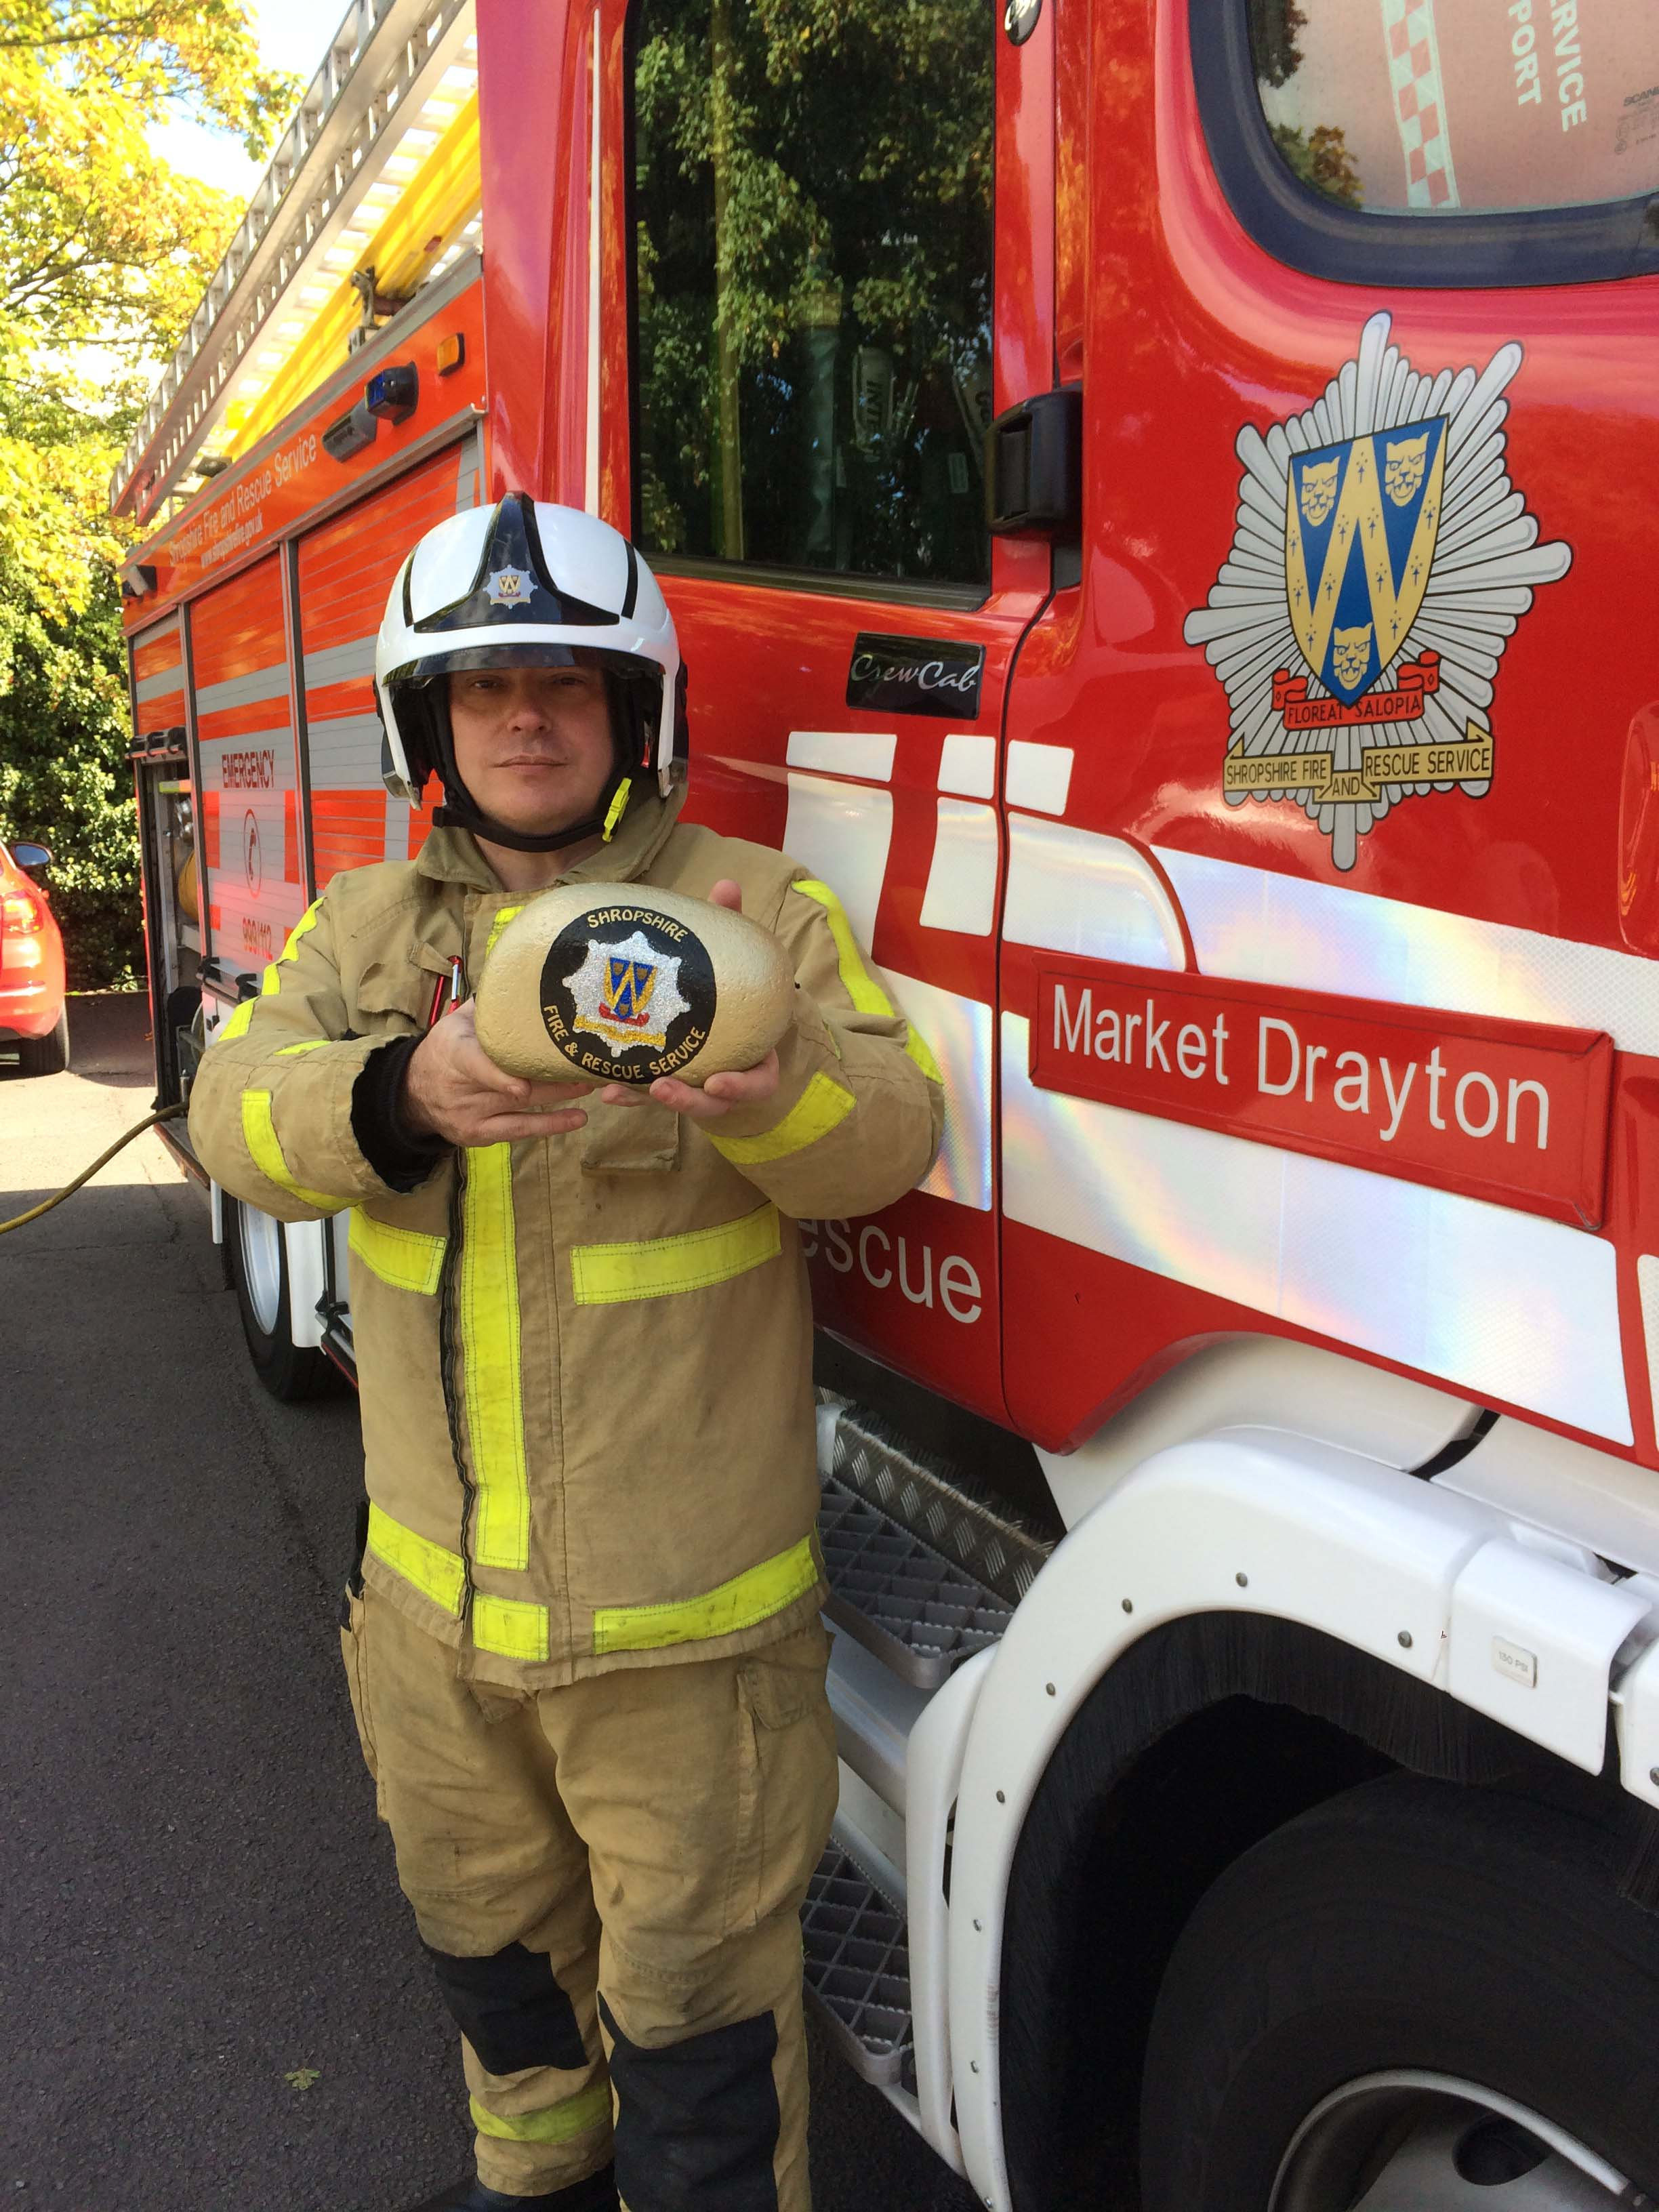 Firefighter Mark Smith with the golden rock